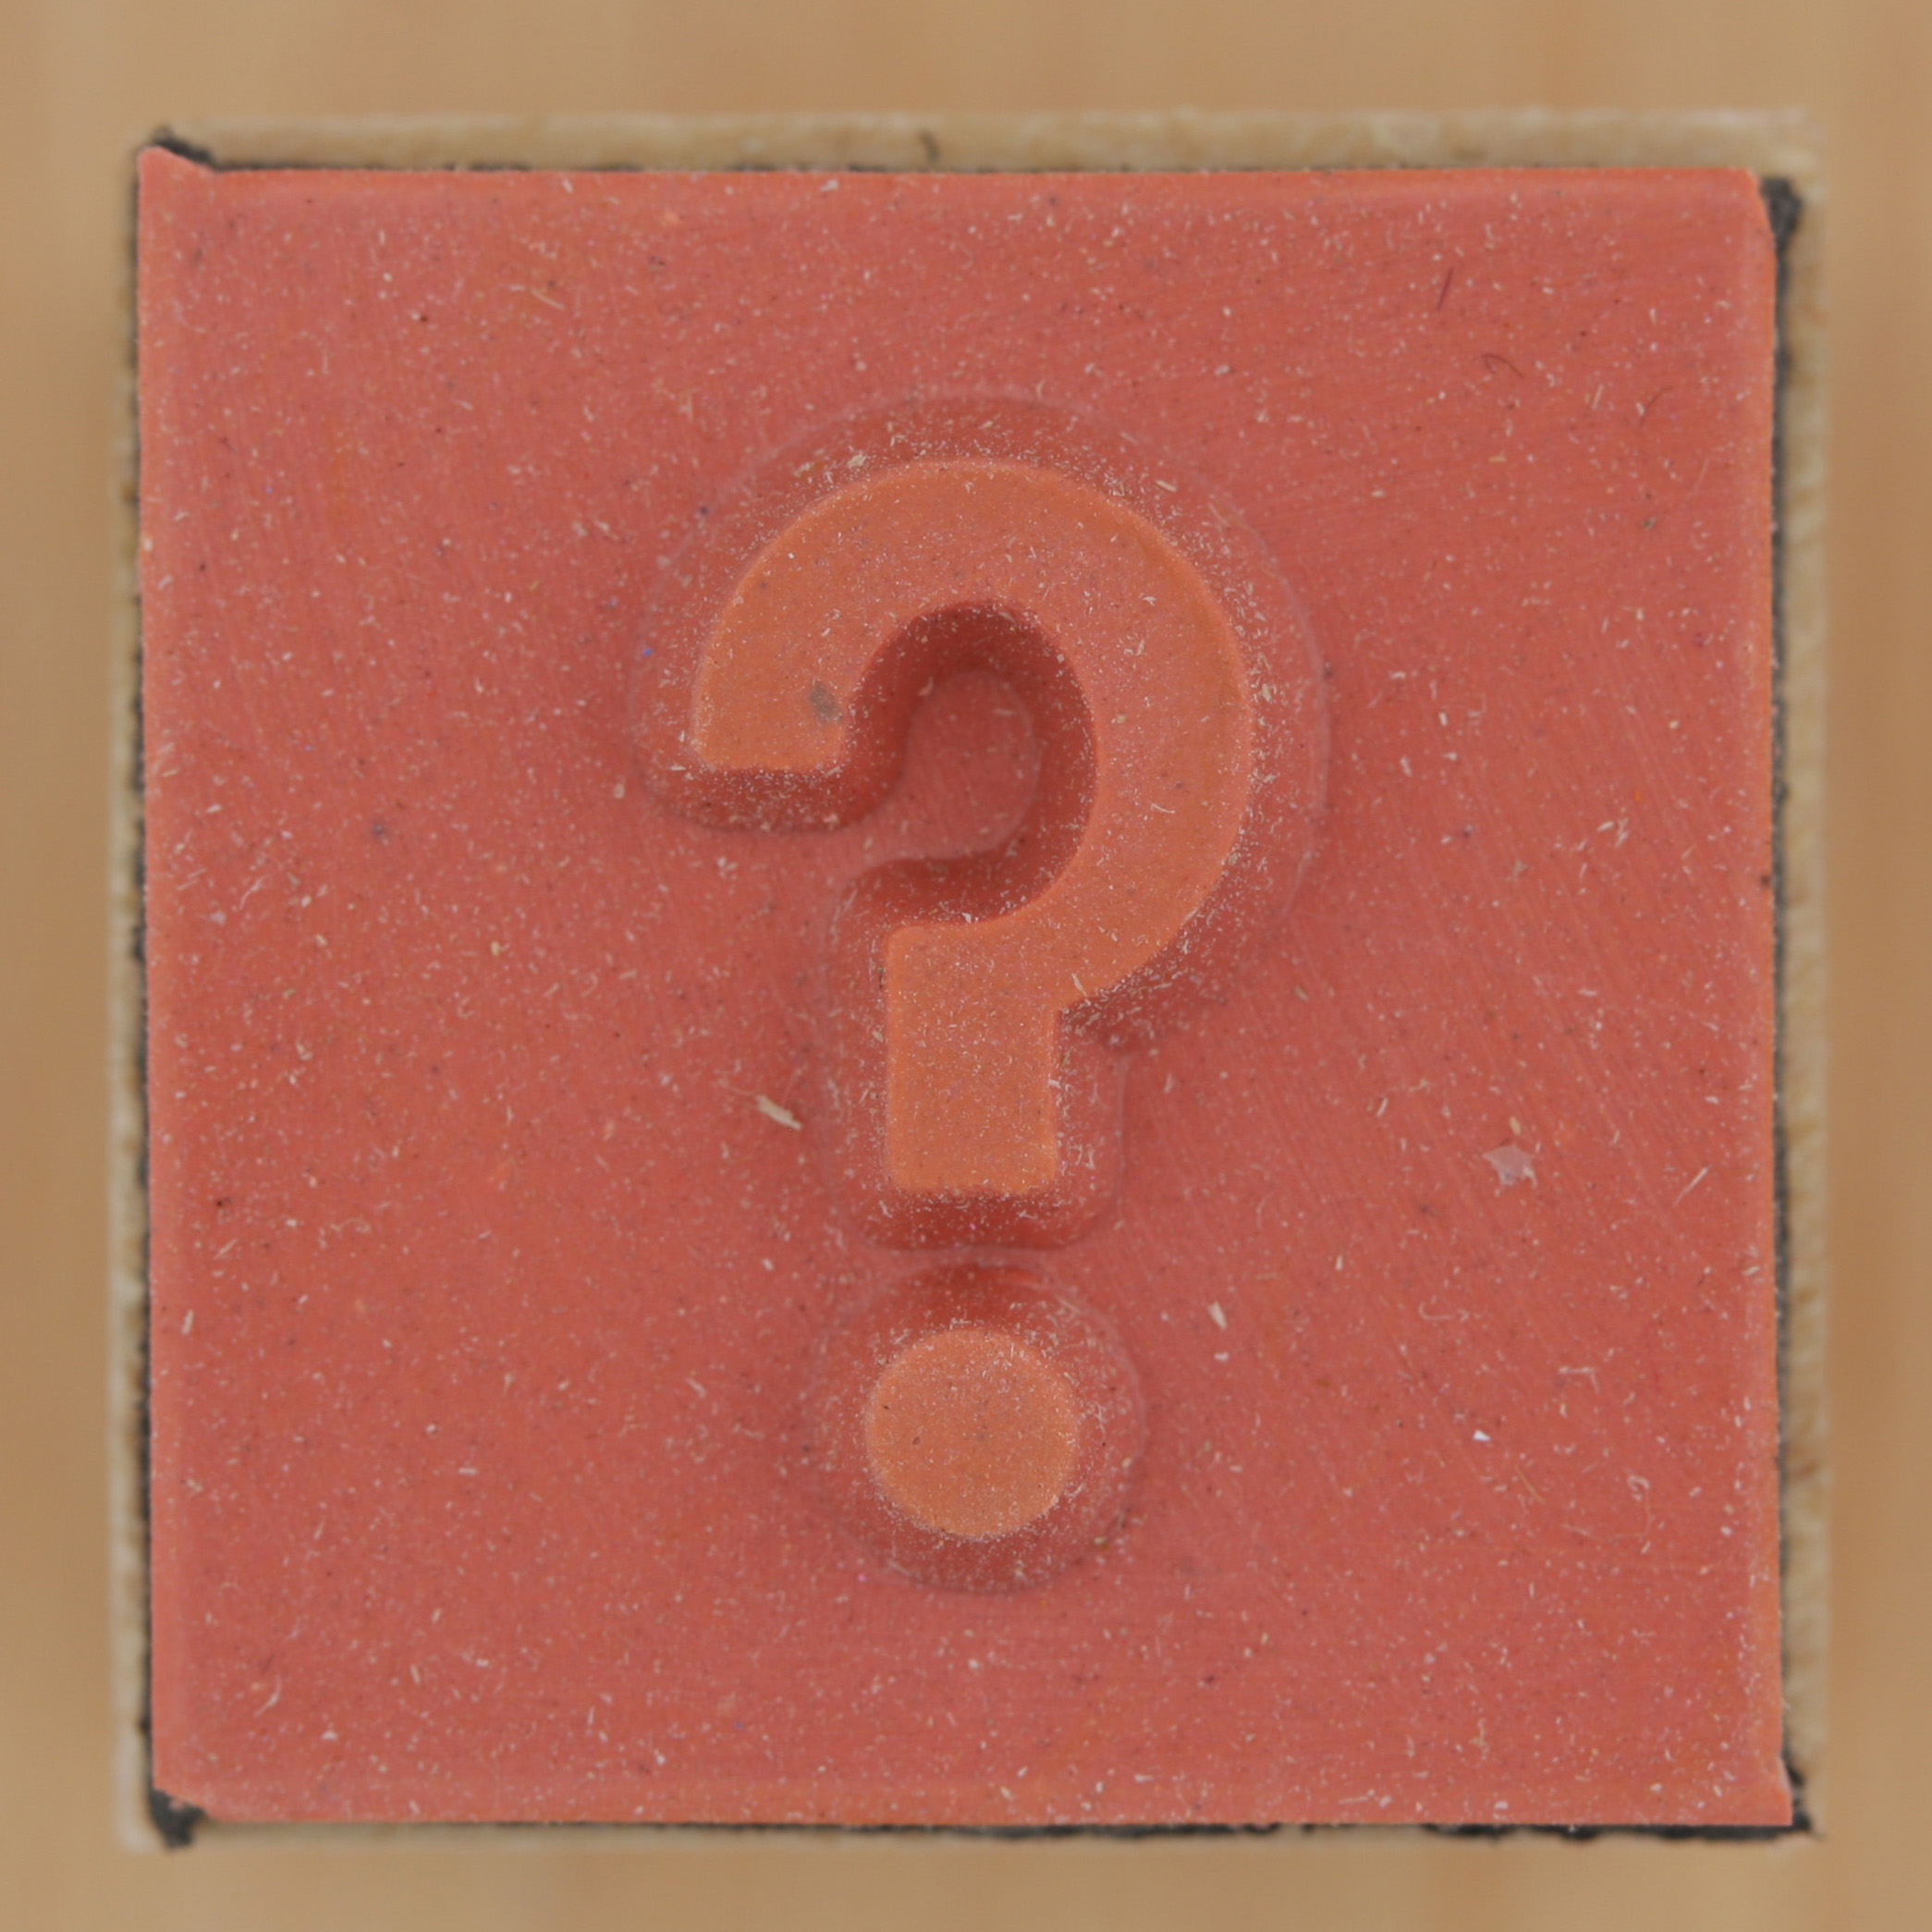 Rubber Stamp question mark | Flickr - Photo Sharing!